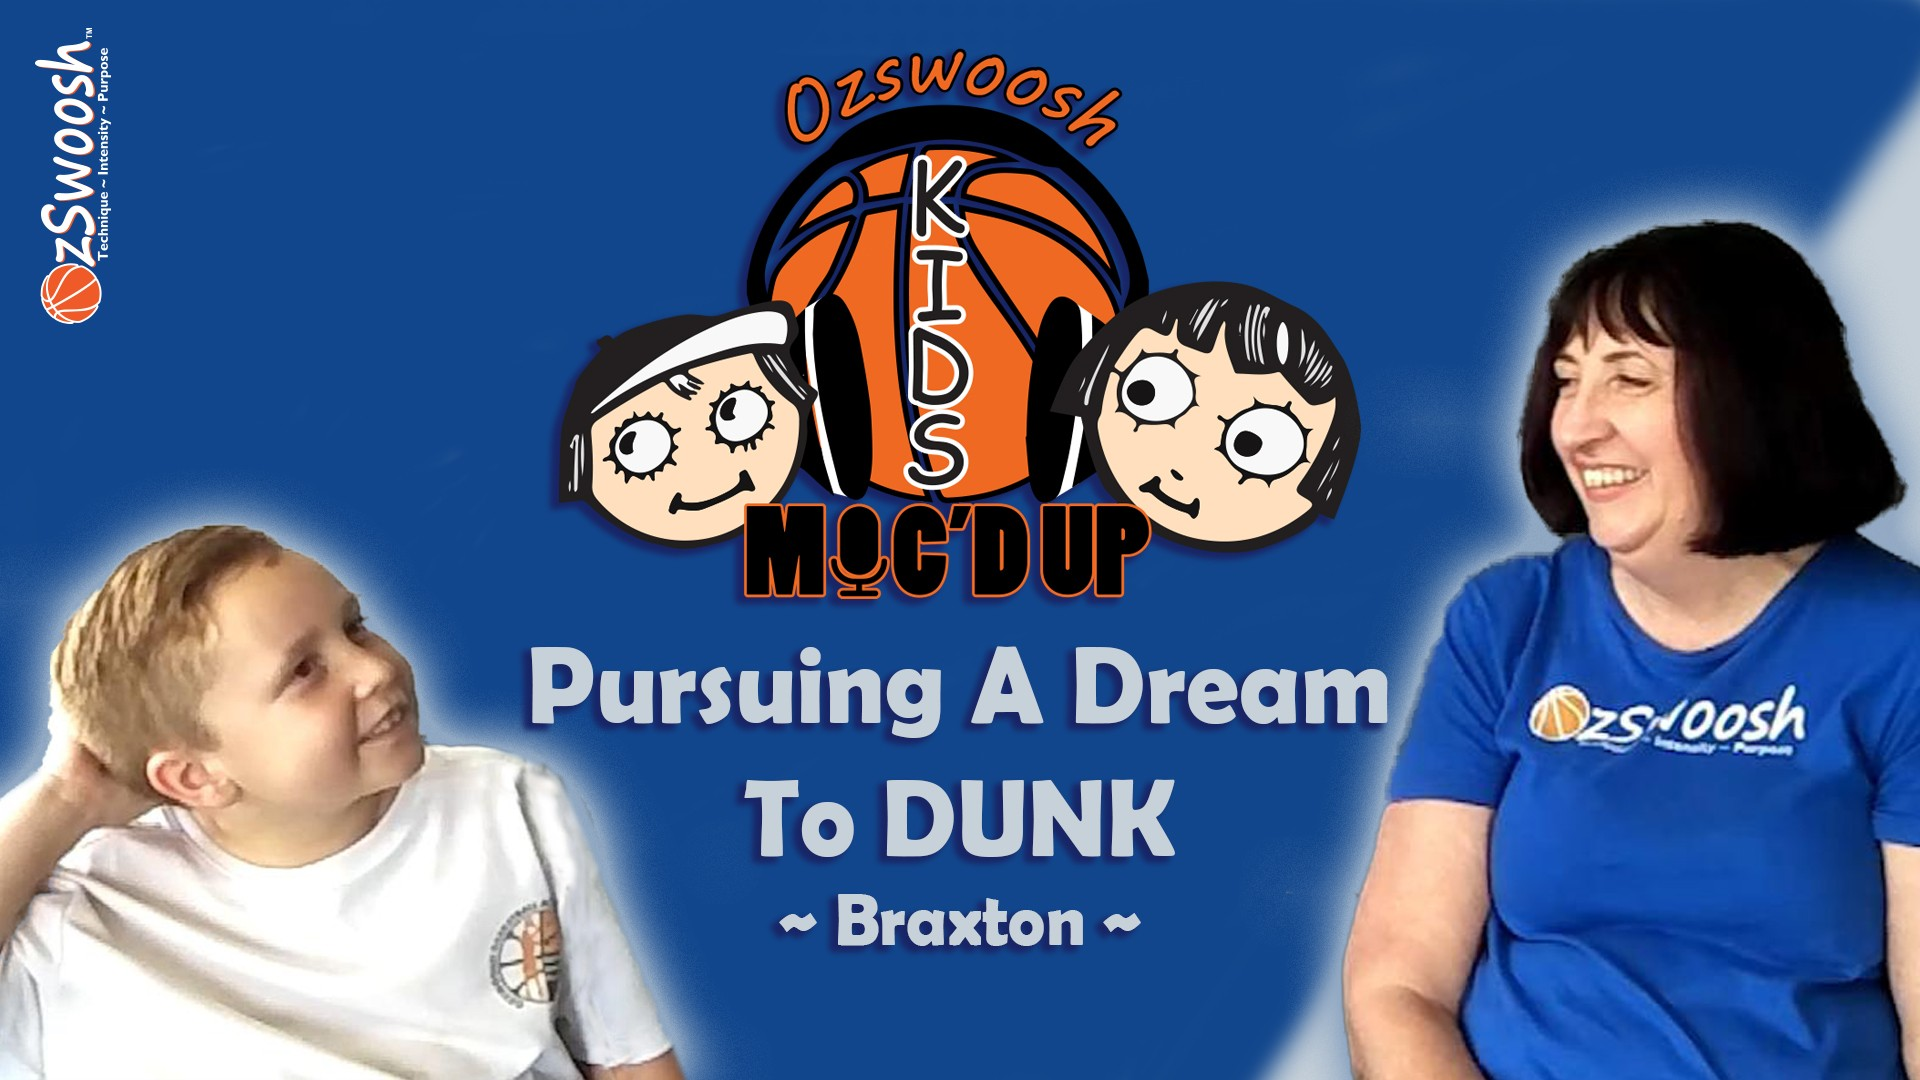 OzSwoosh Rookie Braxton has a Dream To Dunk.